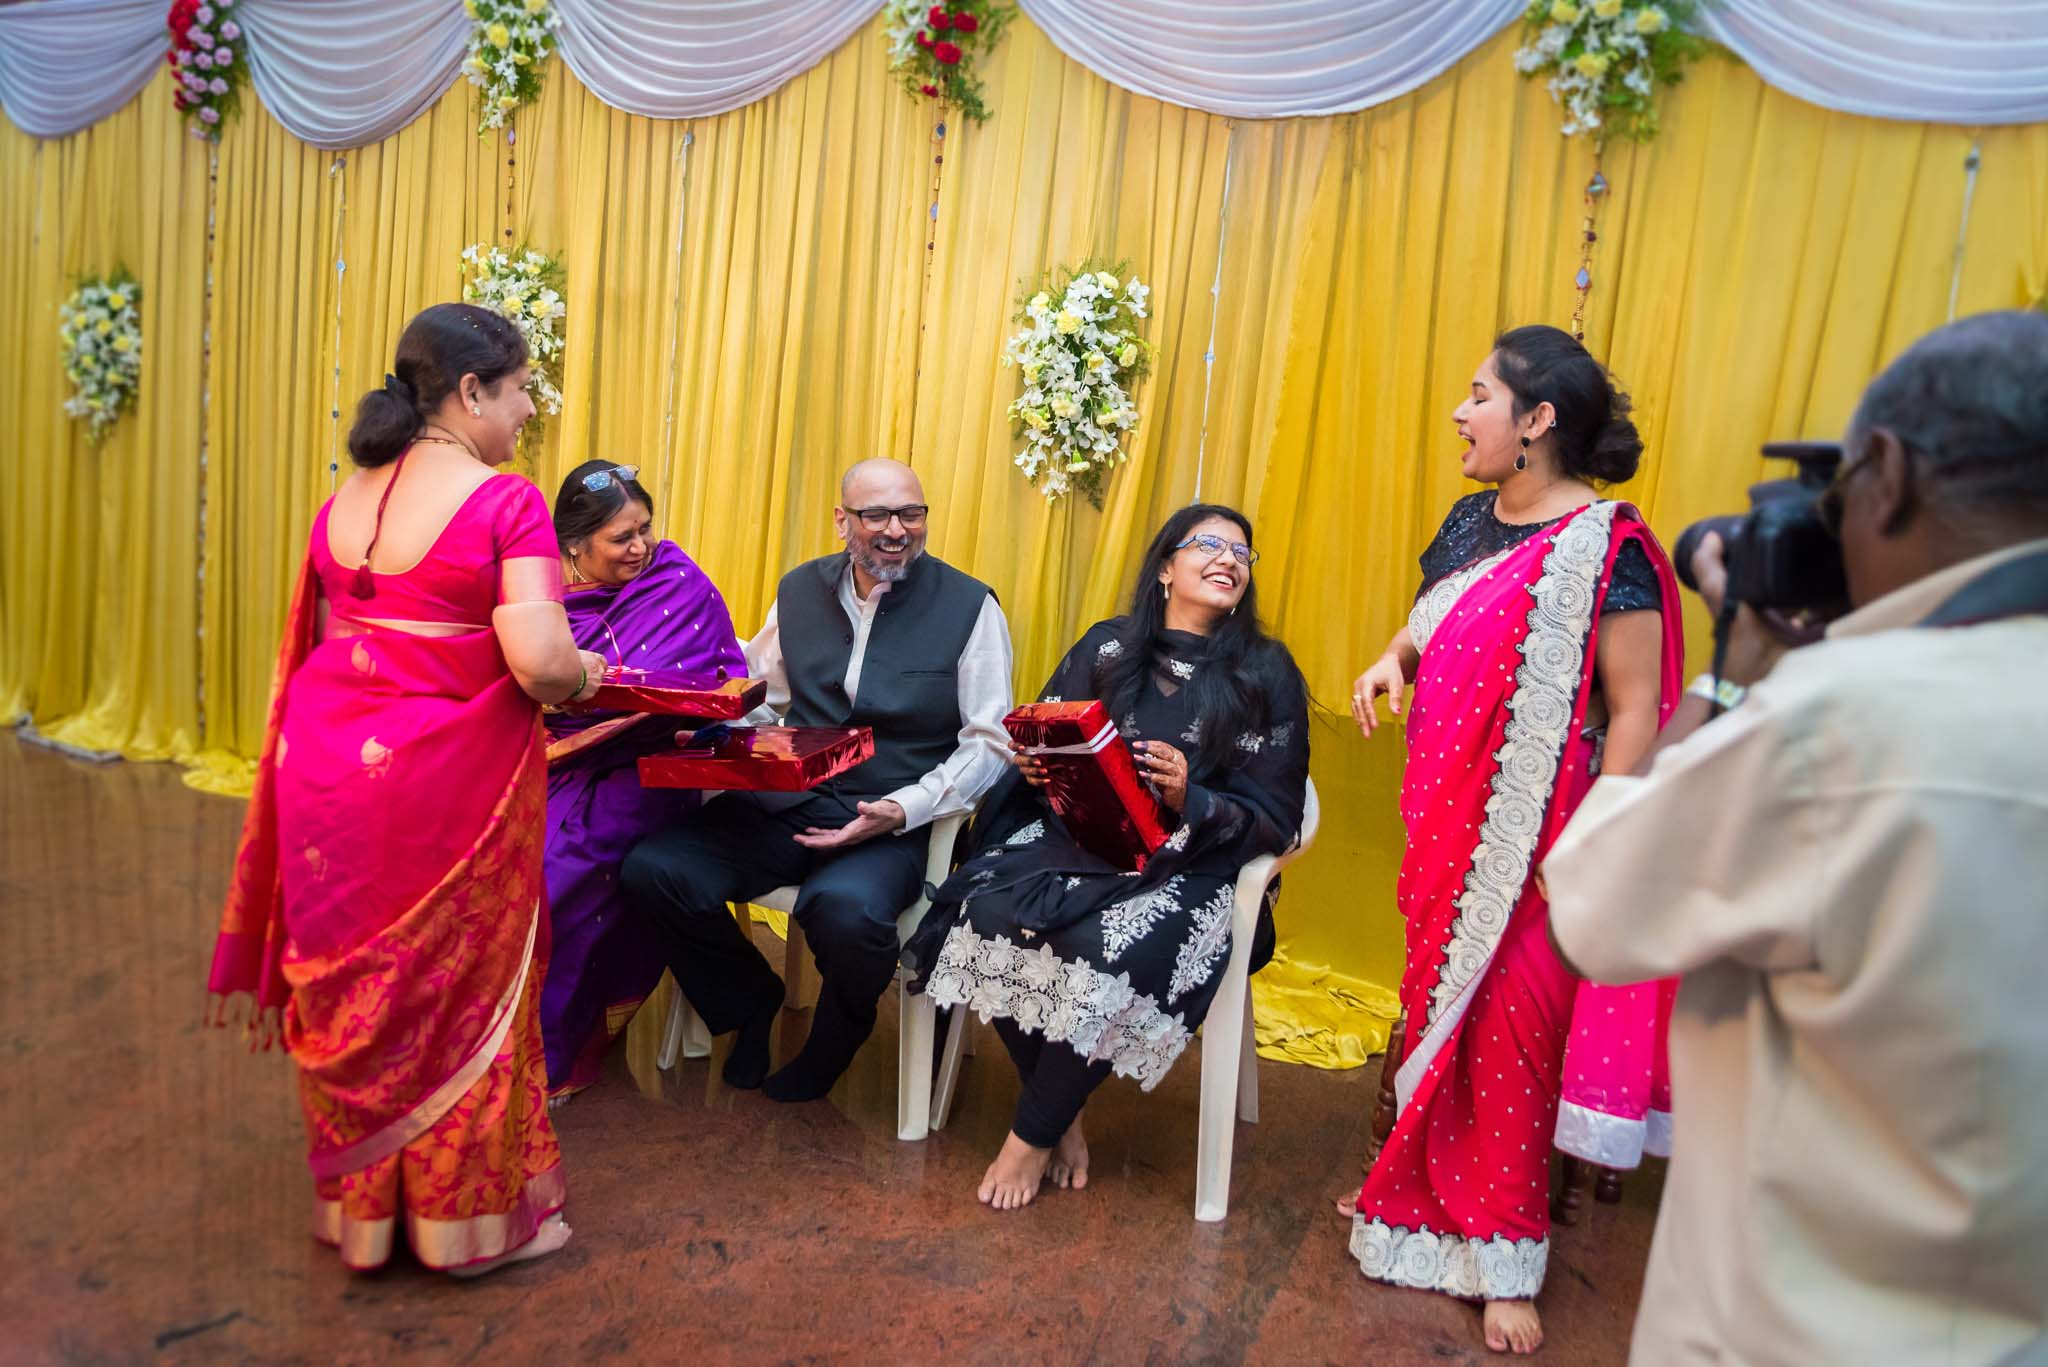 WhatKnot-Candid-Wedding-Photography-Mumbai-Bangalore-114